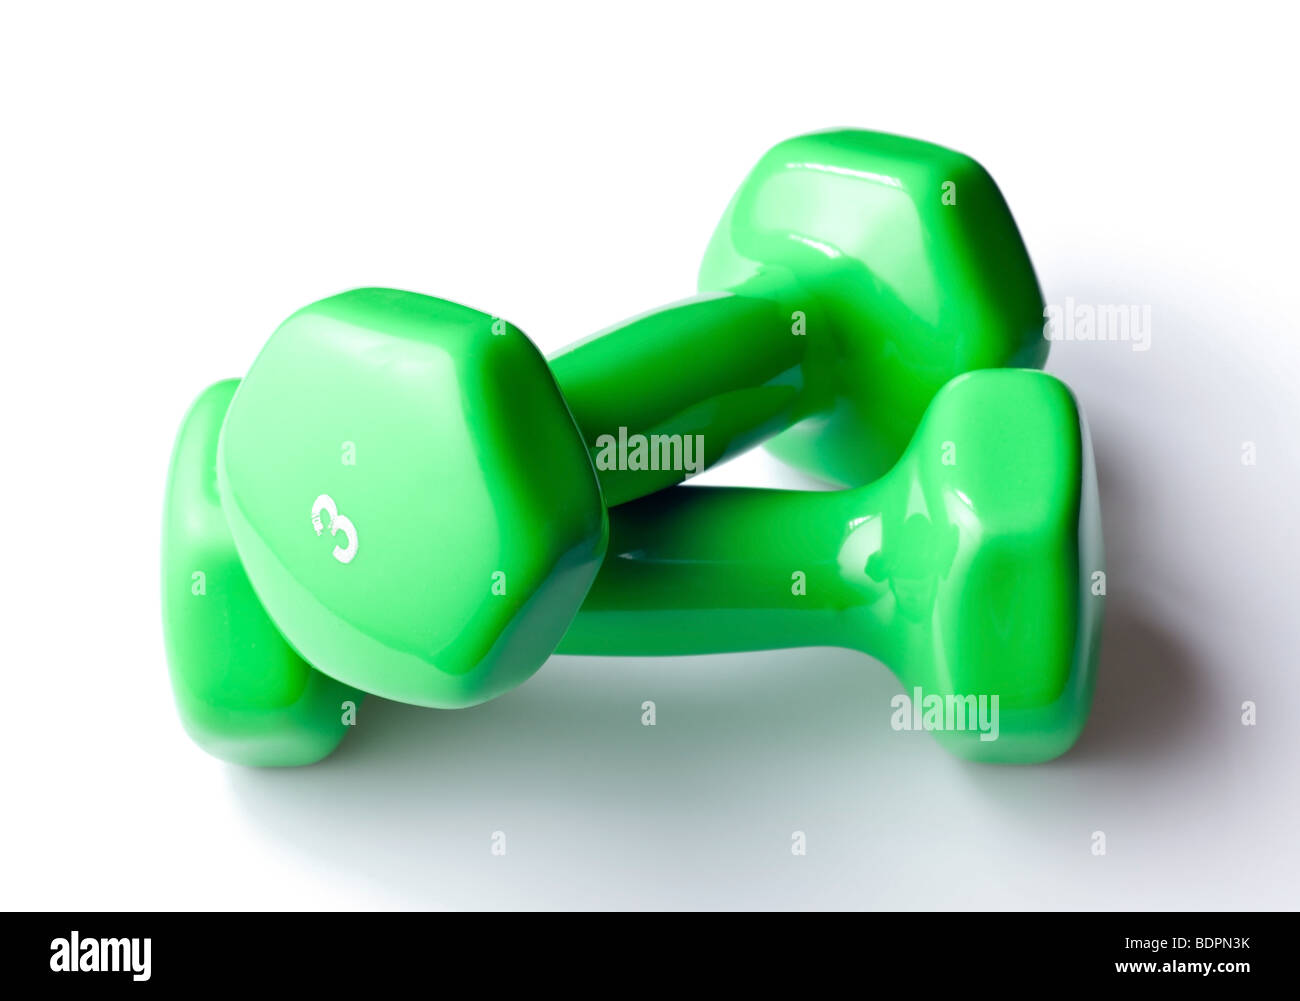 Free weight dumbbells isolated on pure white background - Stock Image